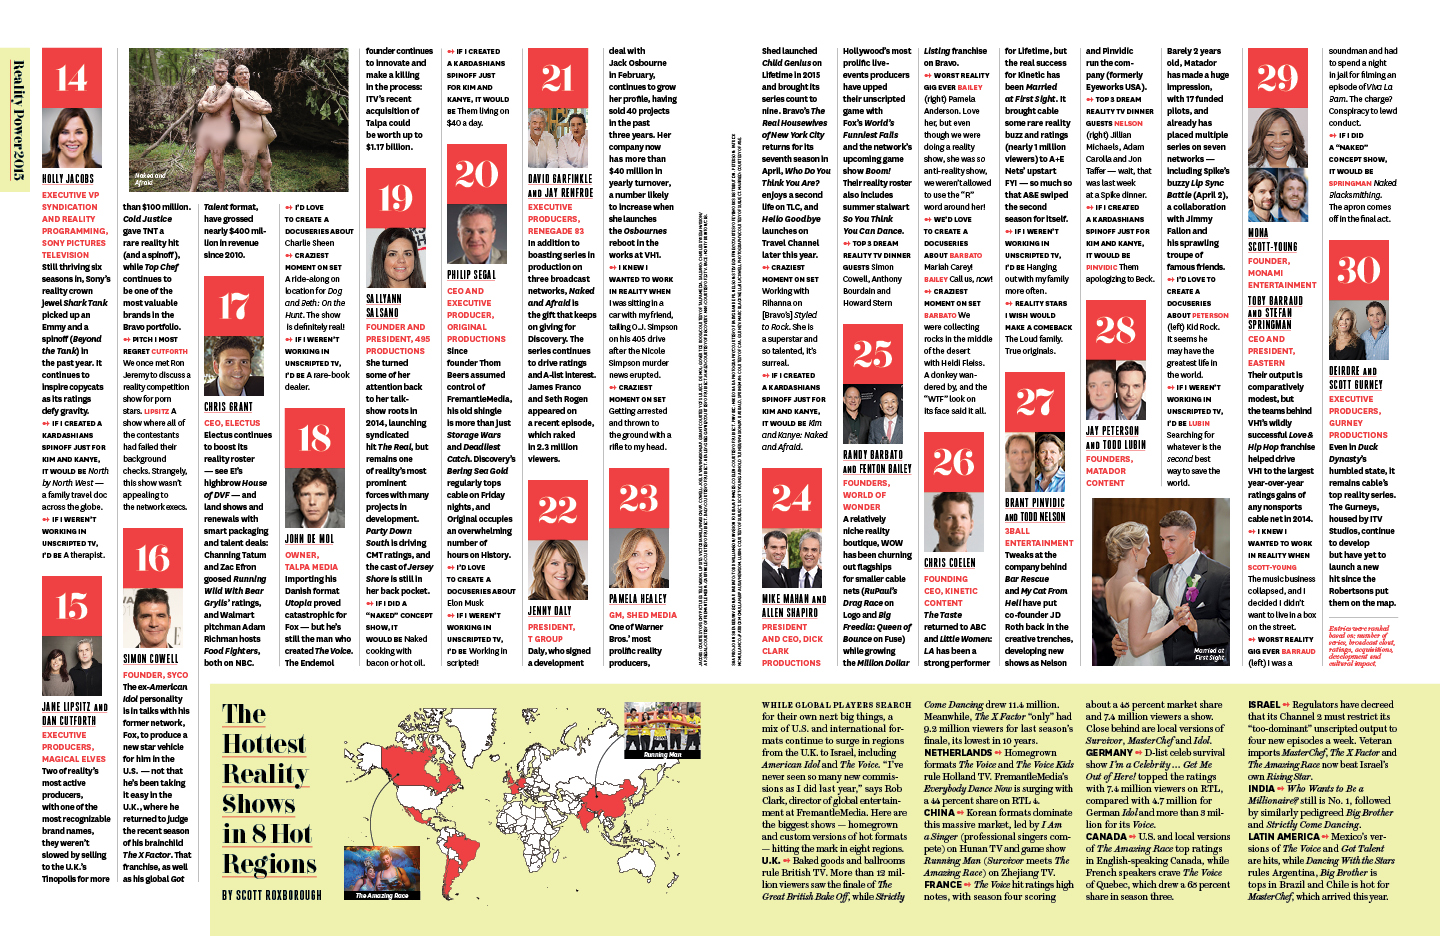 Reality TV's 30 Most Powerful / The Hollywood Reporter / 4.10.15 / kelsey stefanson / art direction + graphic design / yeskelsey.com